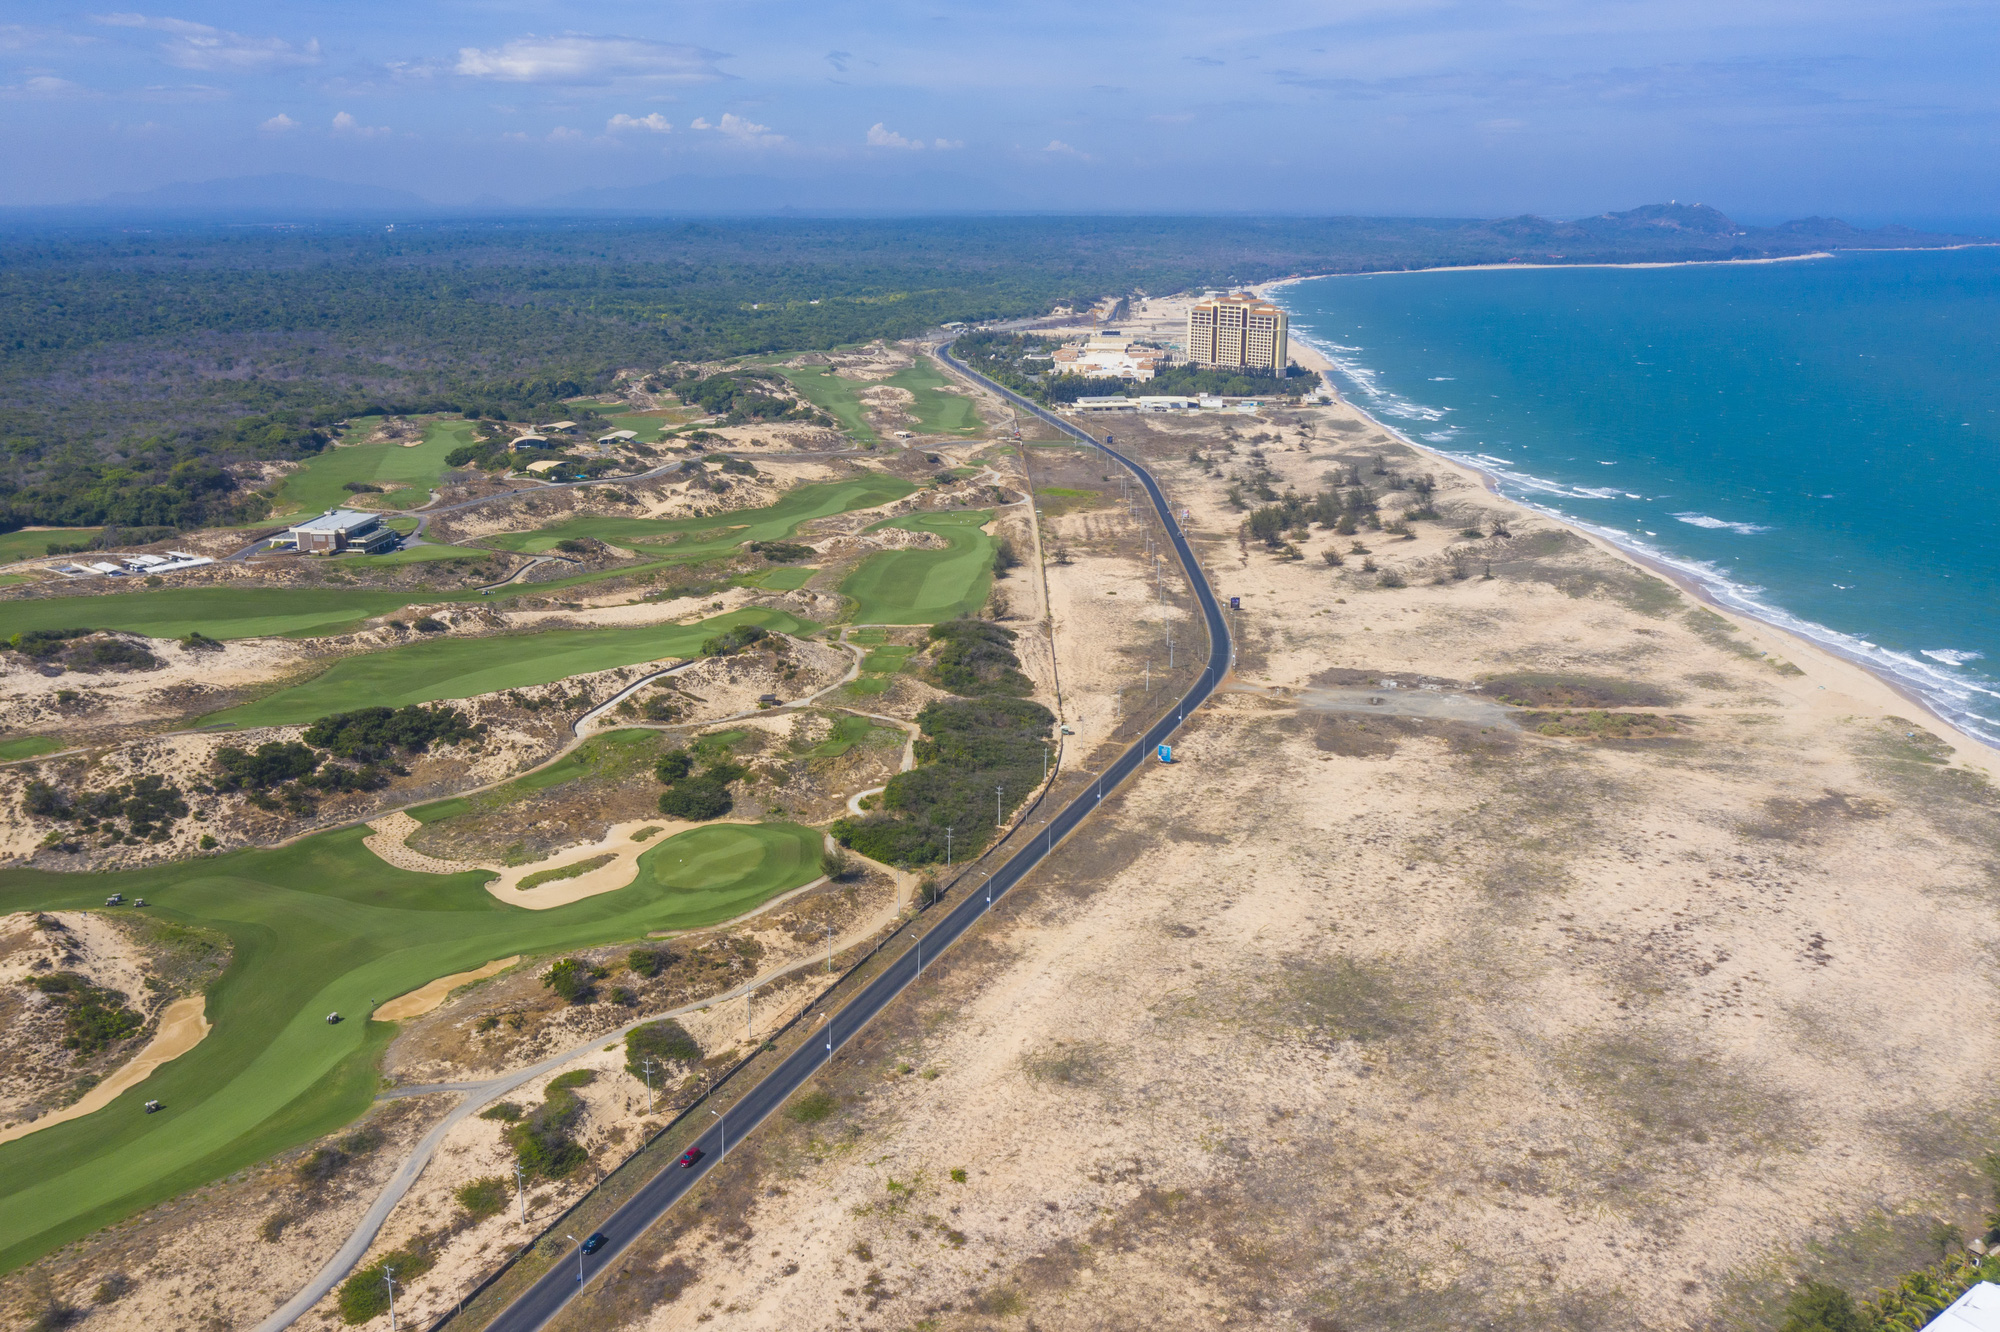 A golf course is being constructed in Vietnam. Photo: Quang Dinh / Tuoi Tre